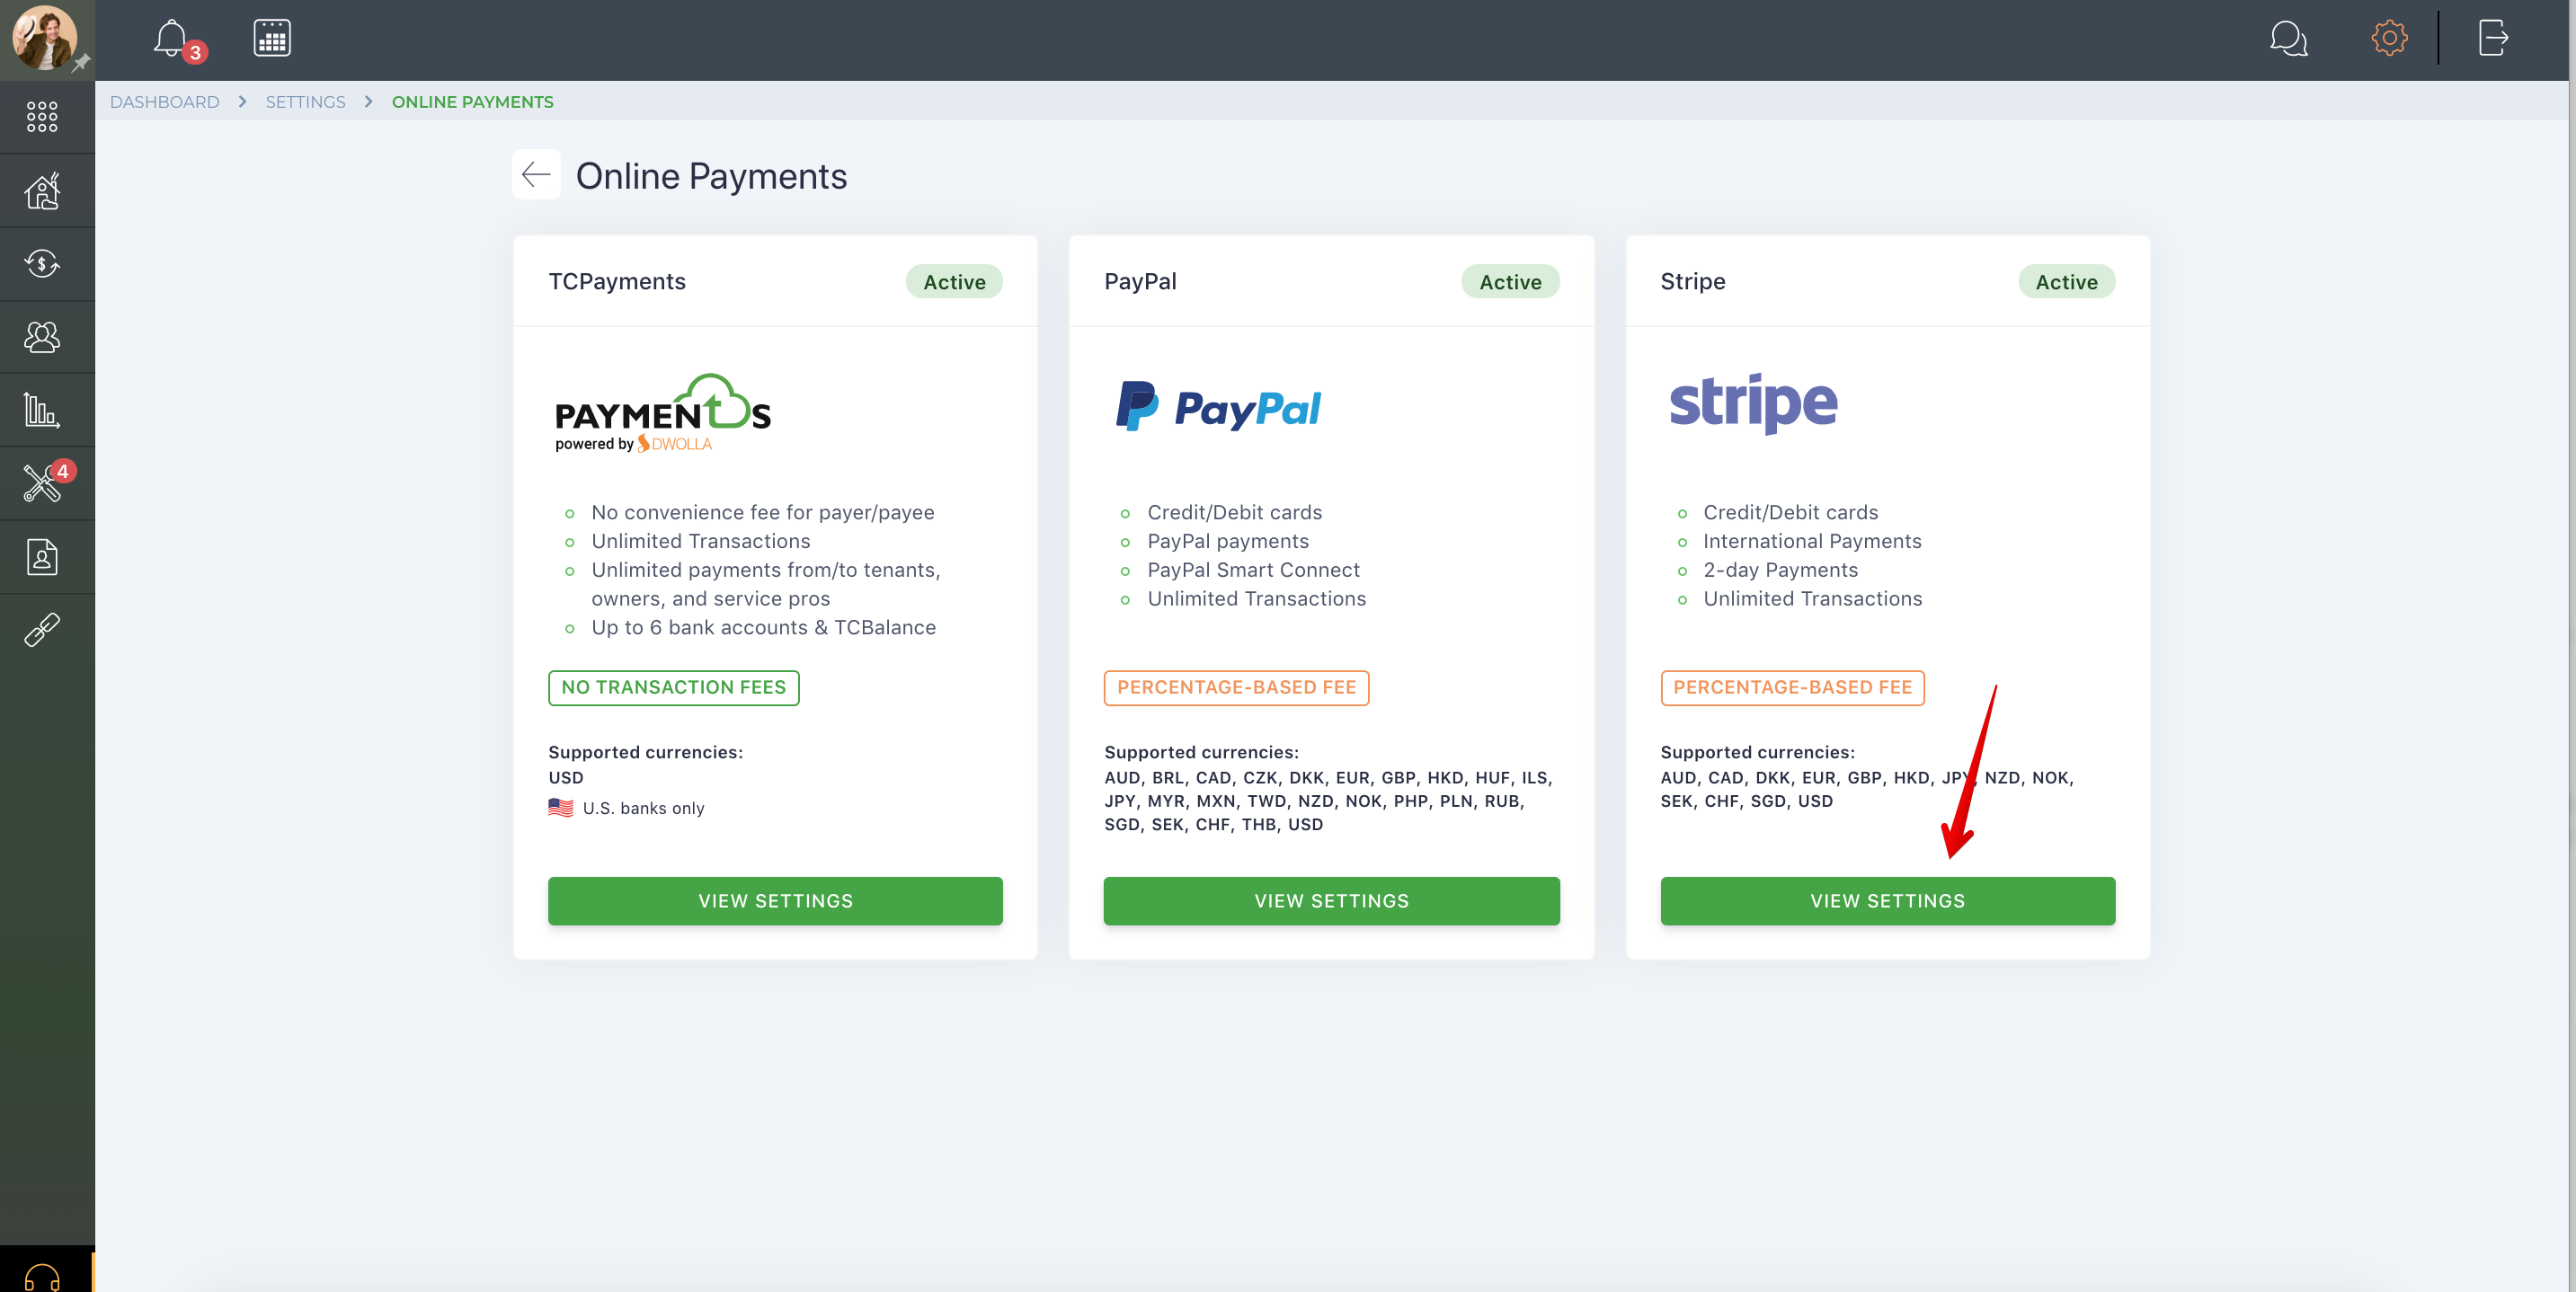 How to deactivate my Stripe account?